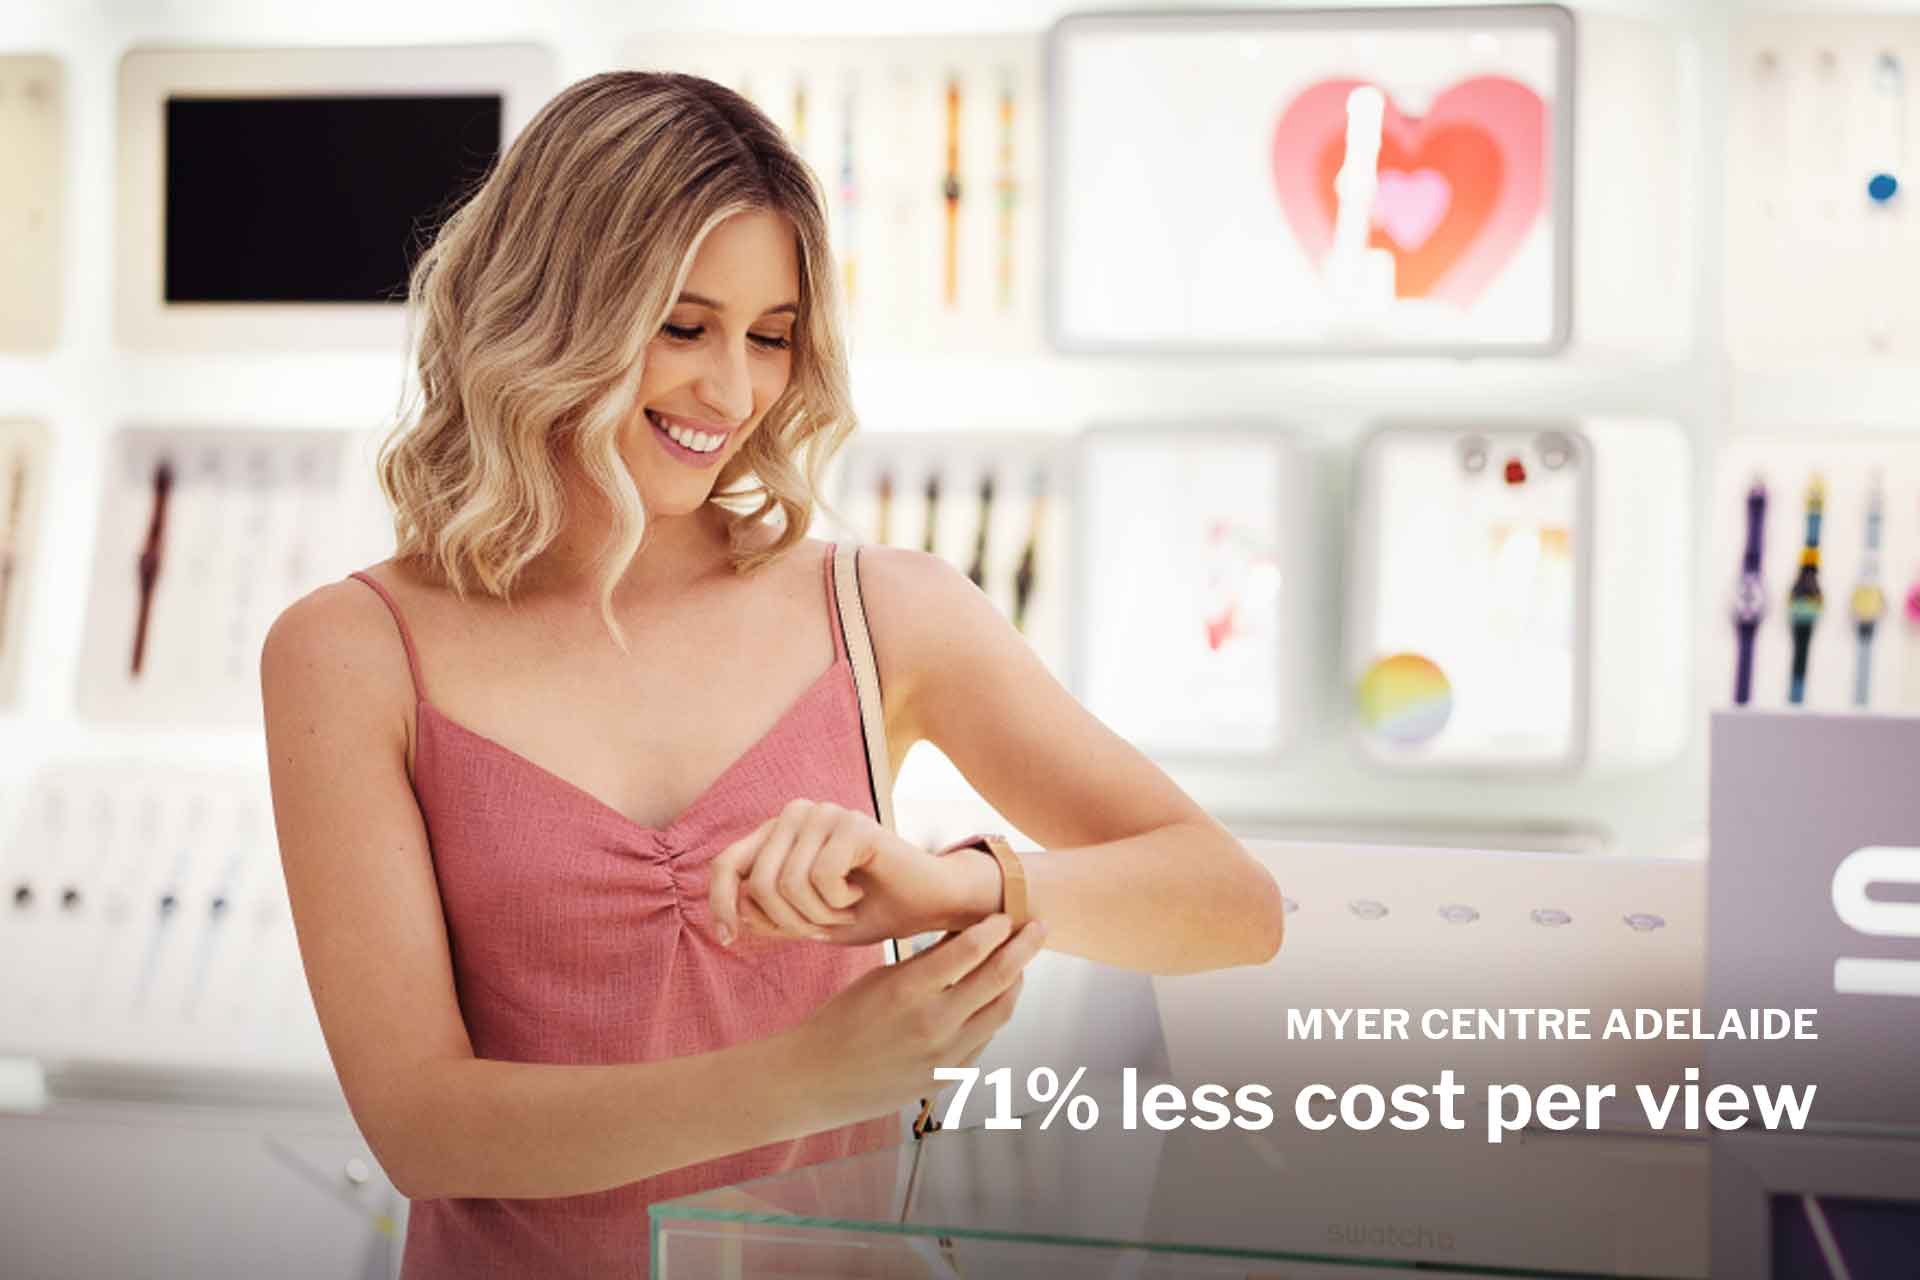 digital marketing adelaide case study Myer-Centre-Adelaide